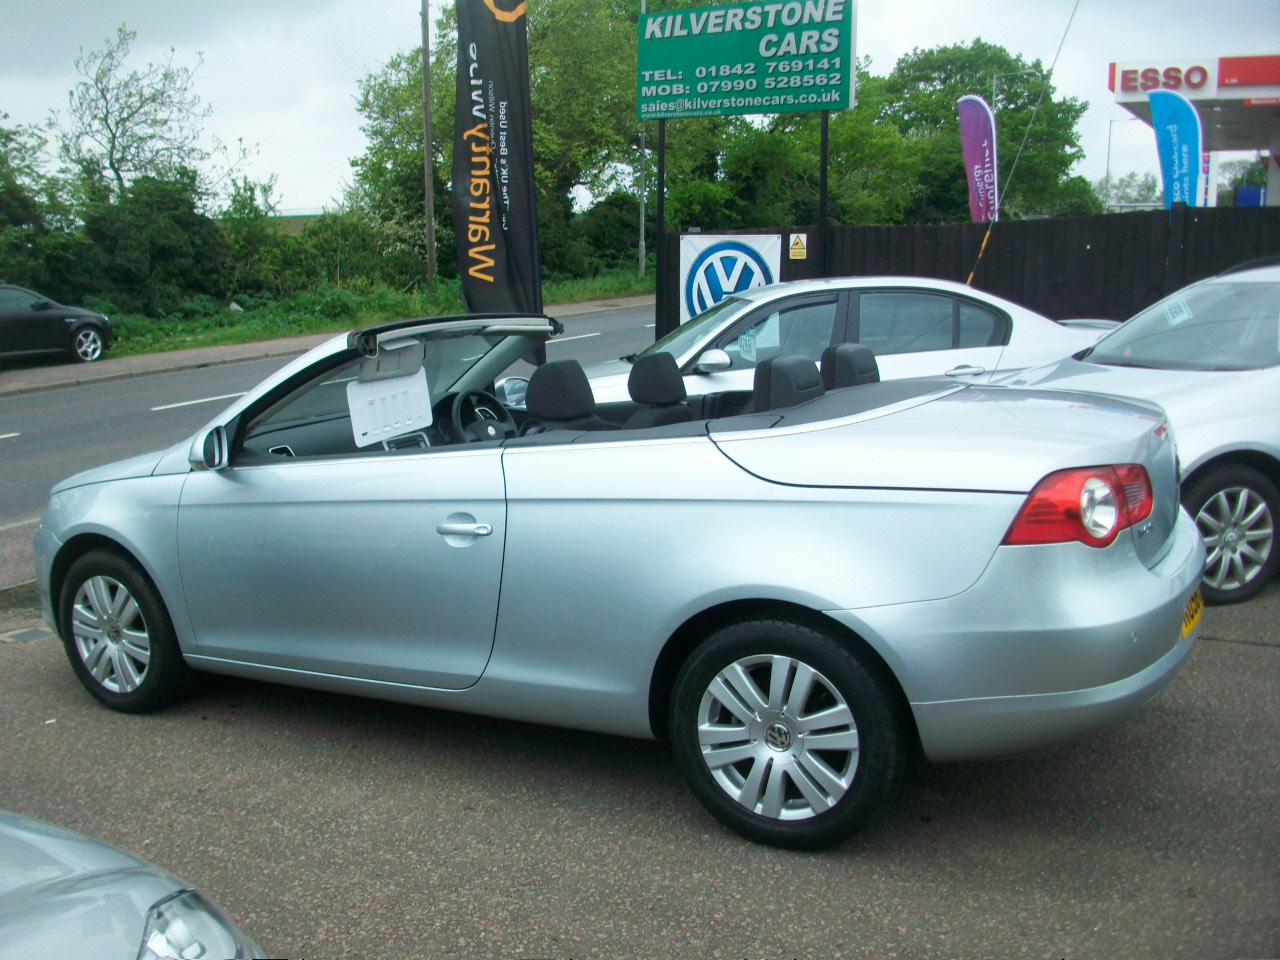 Vw Eos 1 6 Convertible Kilverstone Cars Used Cars Thetford